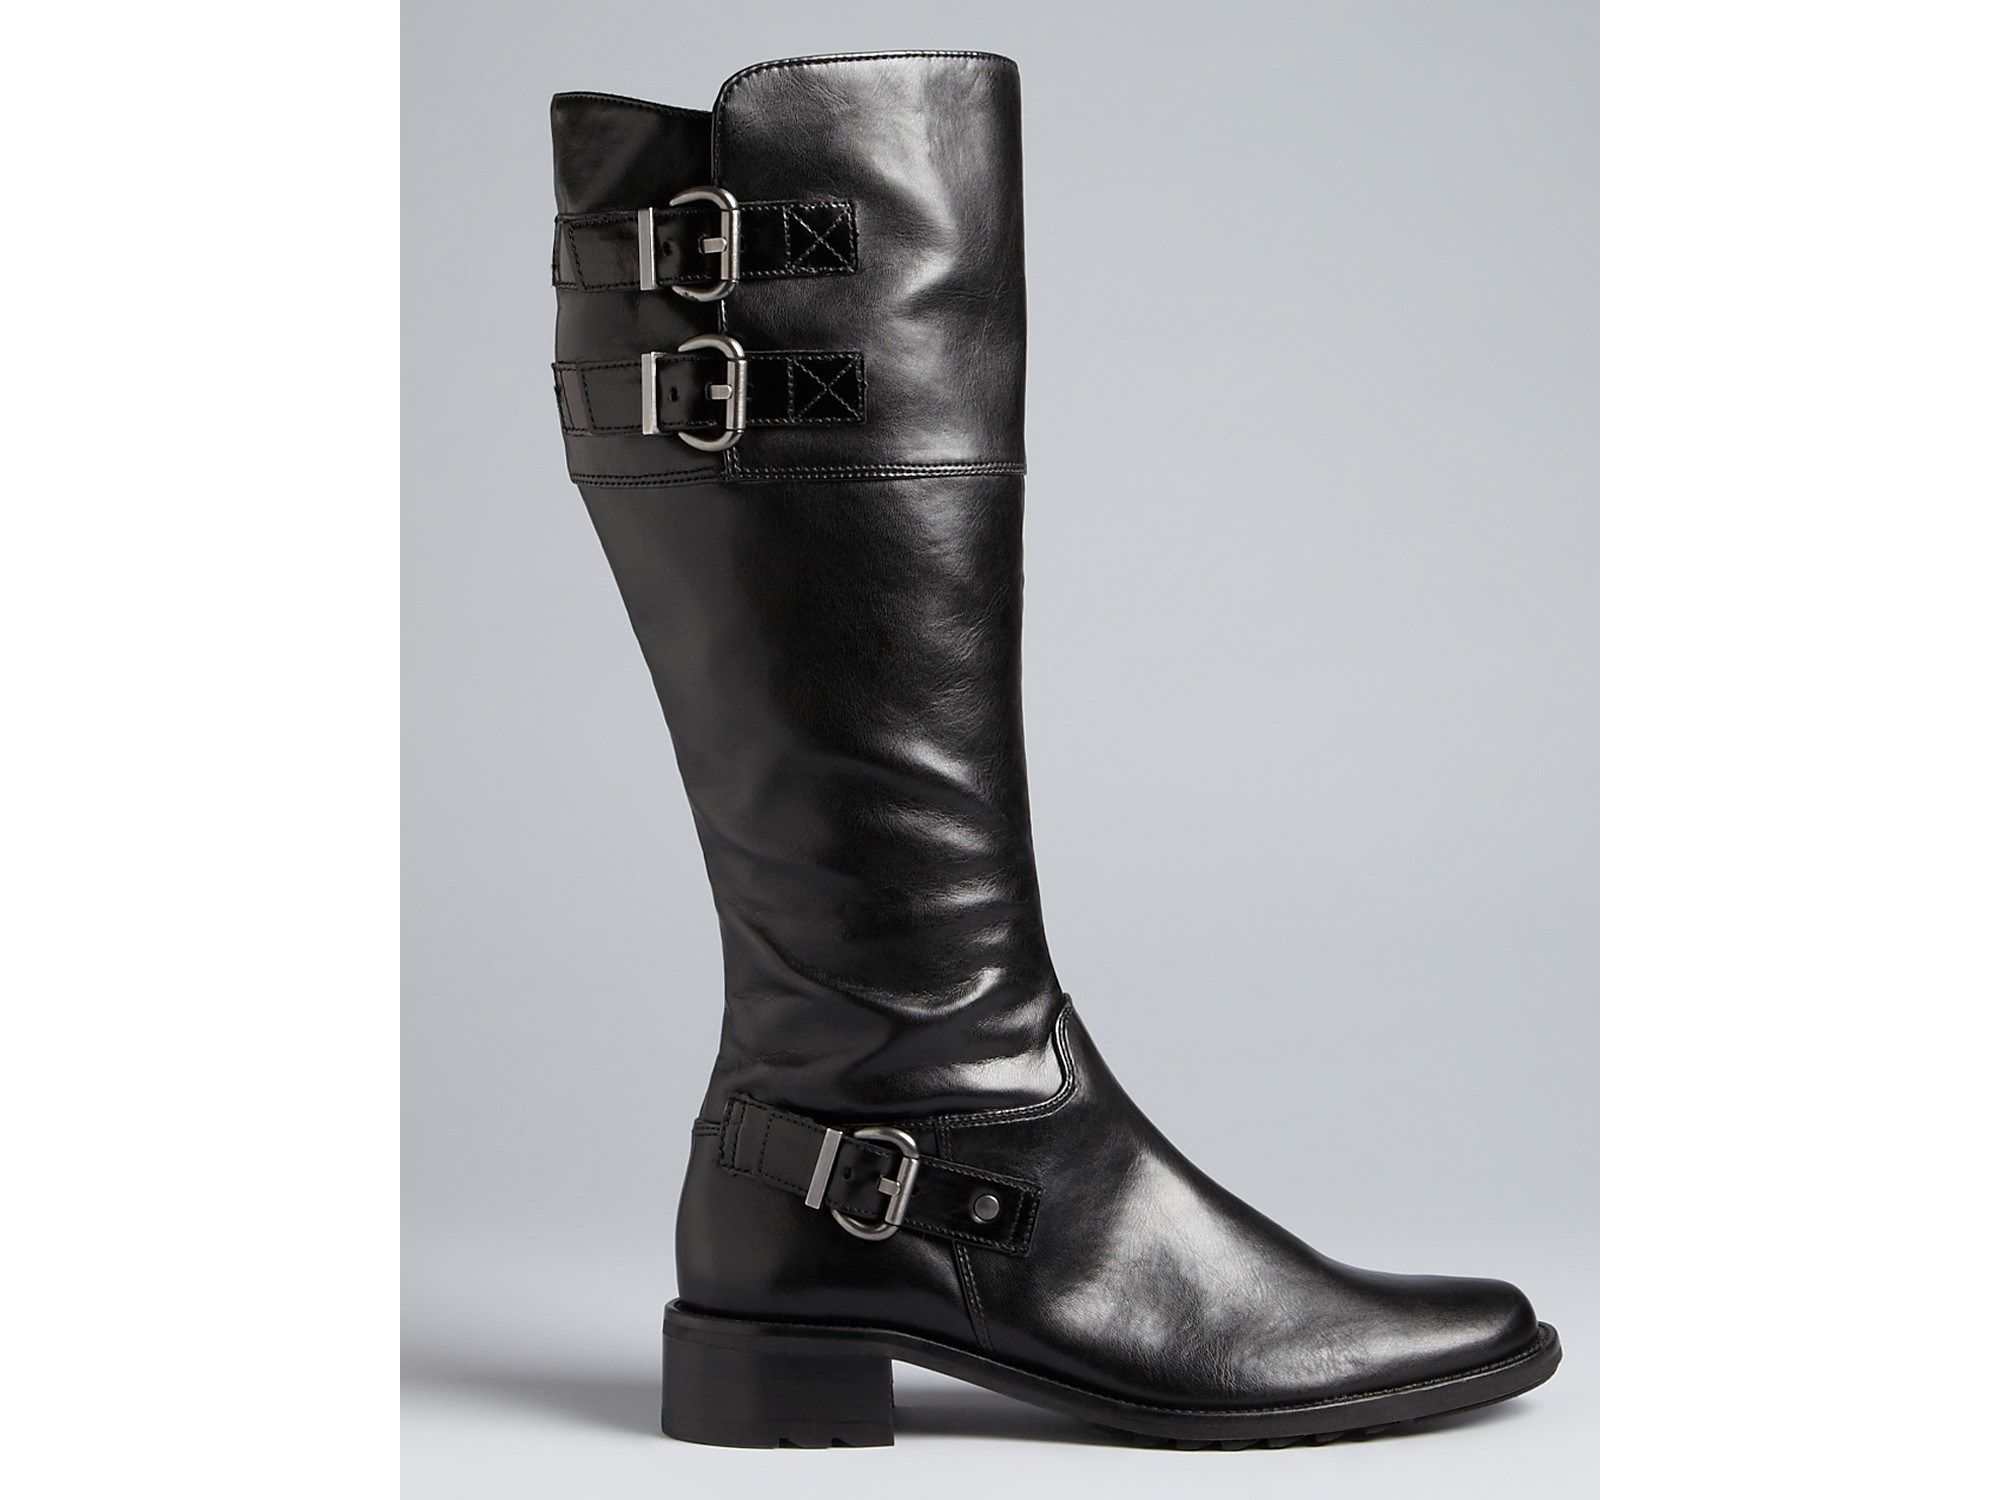 ad4896598f06 Lyst - Paul Green Riding Boots Noah in Black